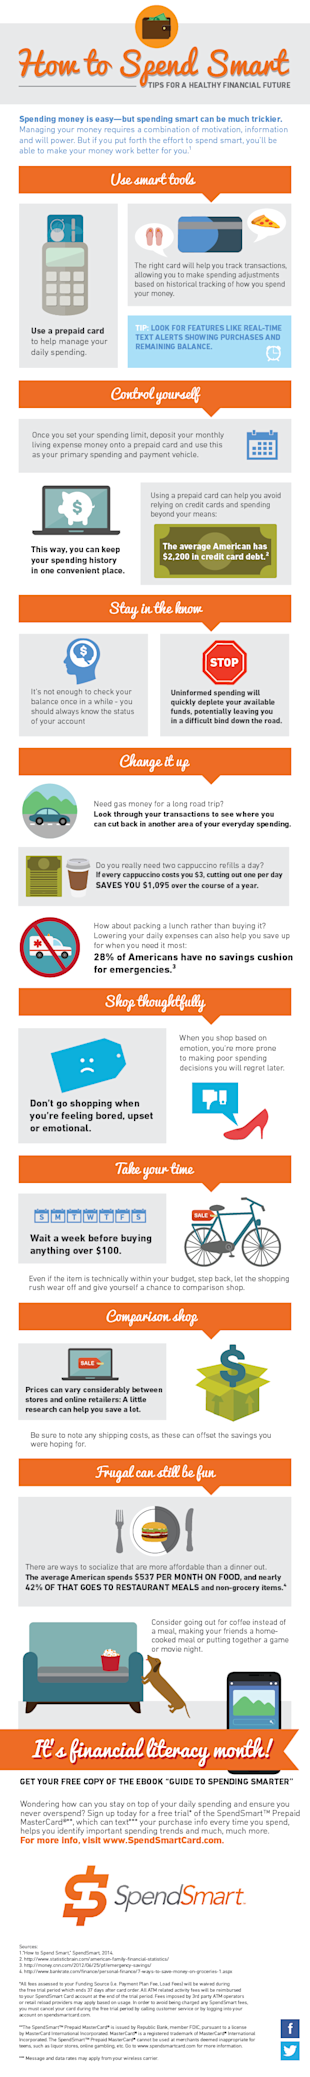 7 Financial Tips to Help You Save Smart and Spend Wisely image spendsmart flm infographic 6a8a87d32c81d837bf9196c3abfa2a5b